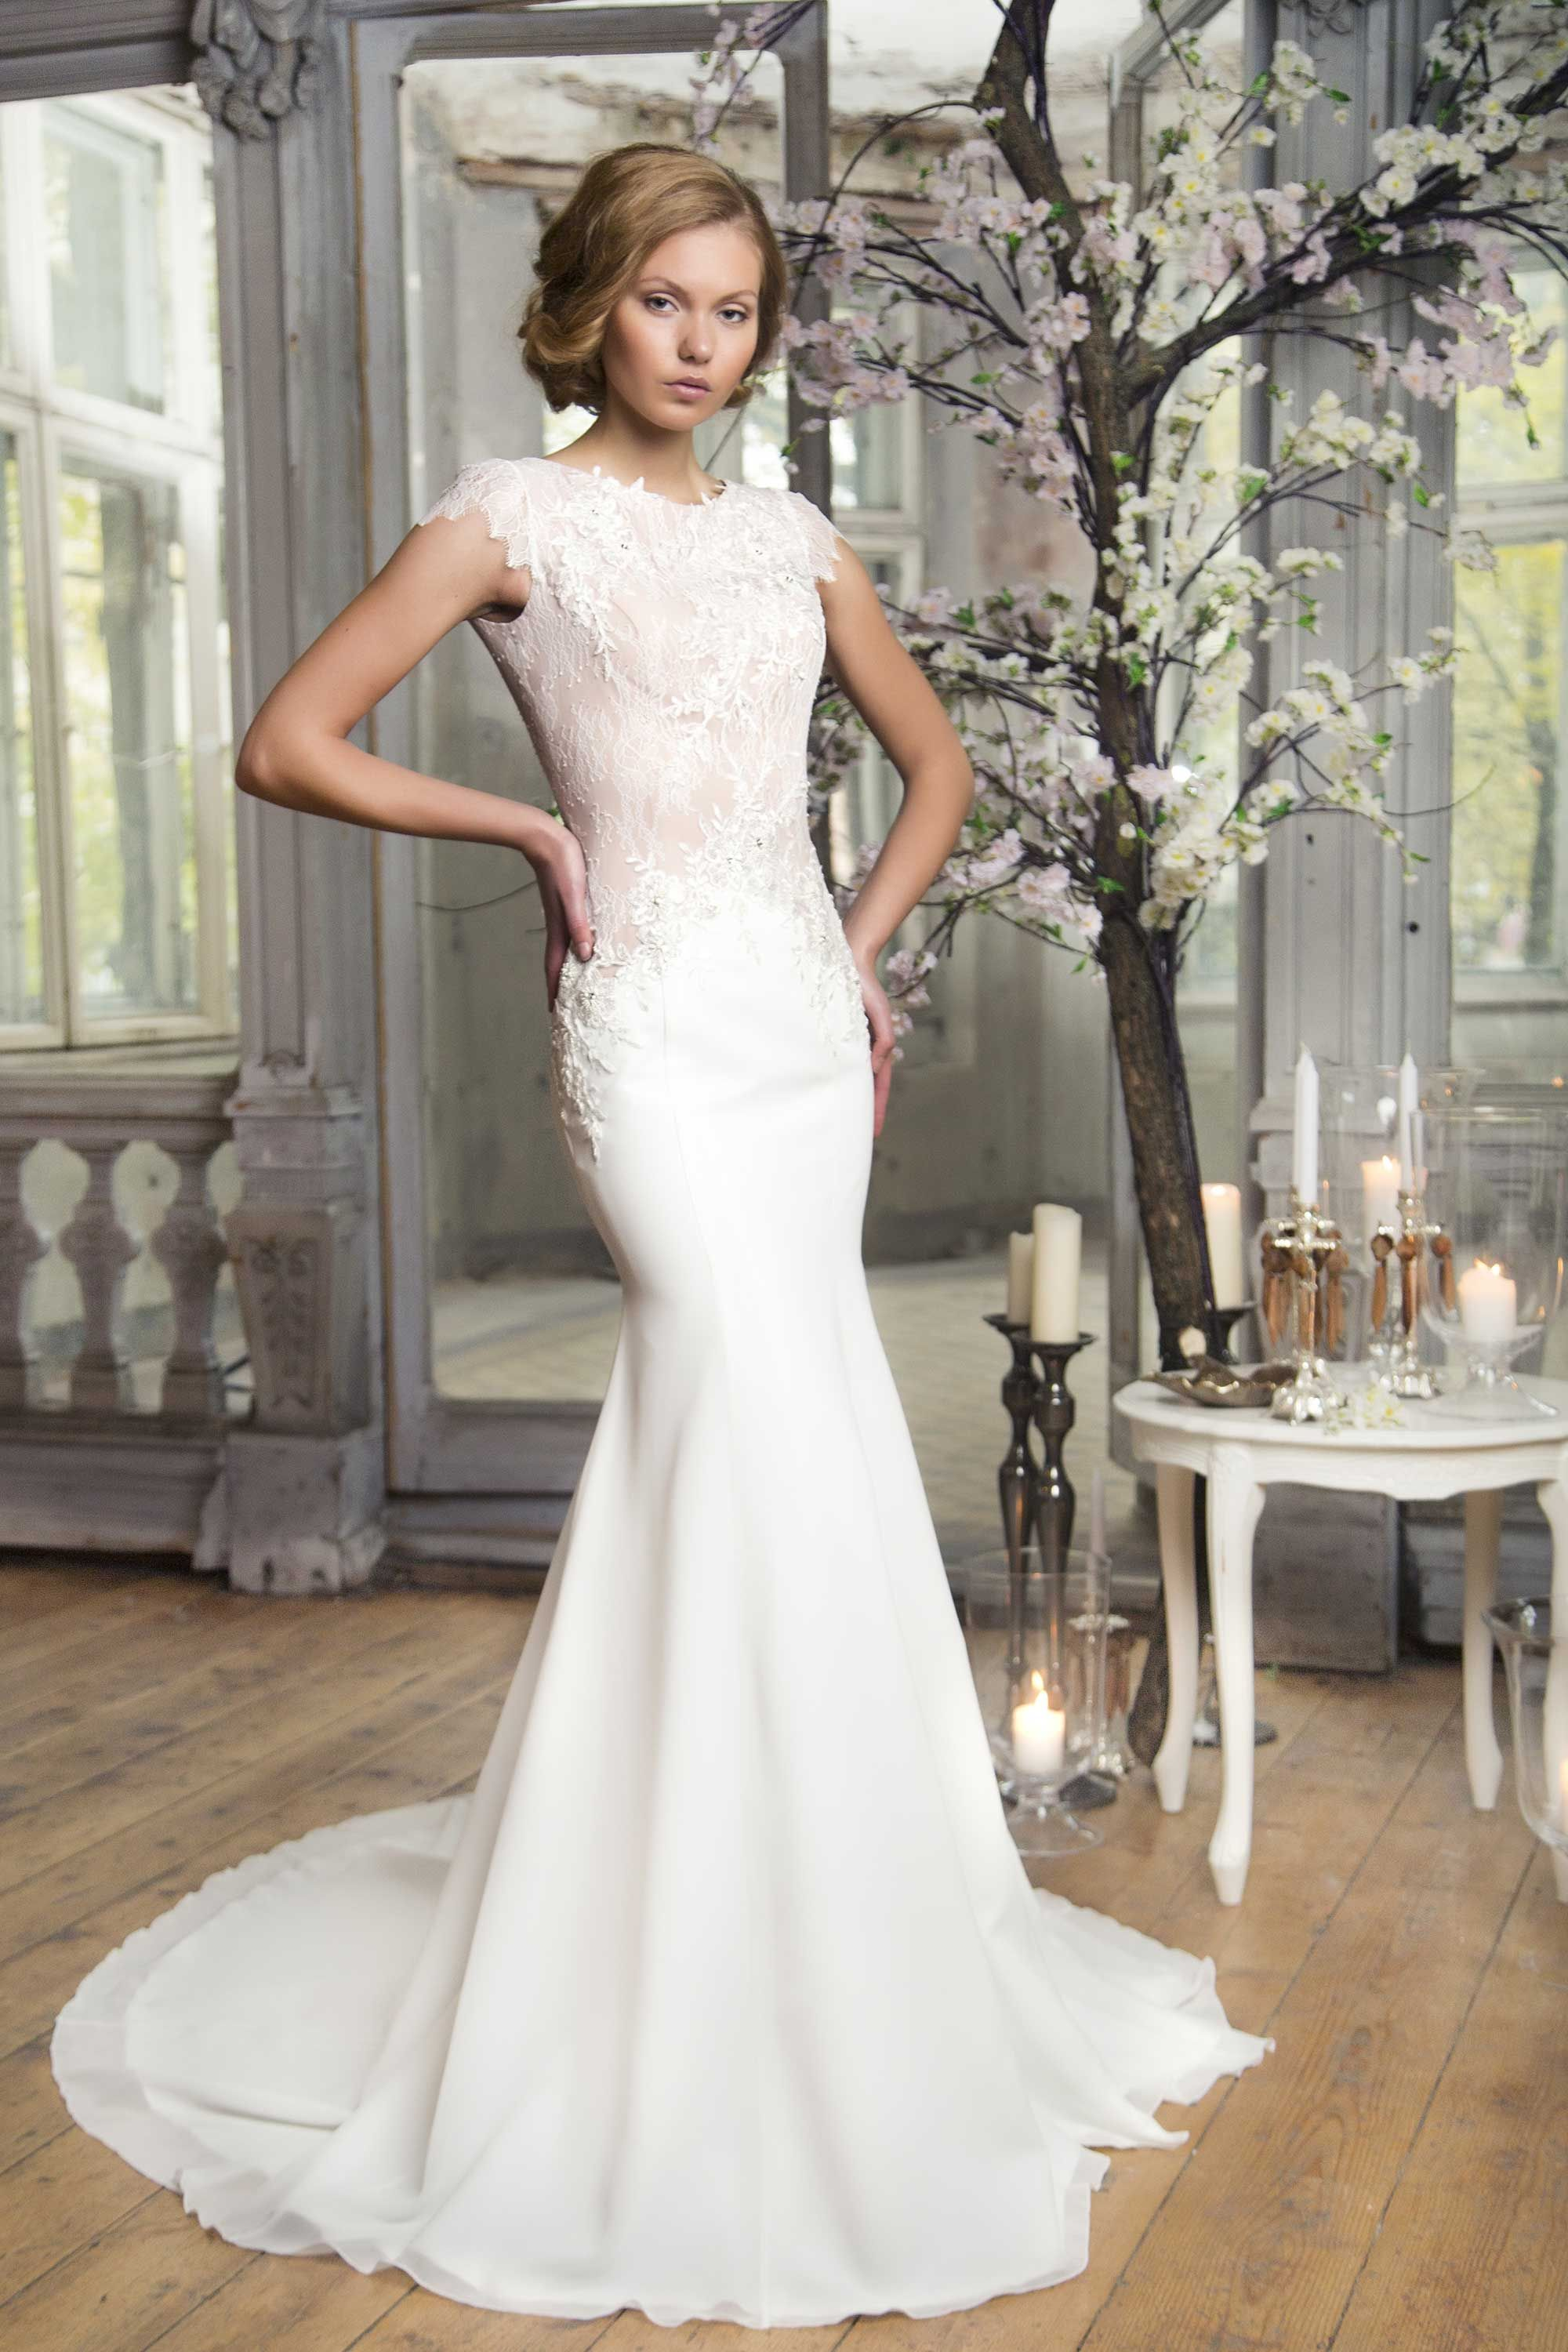 Amazing mermaid wedding dress from ingrida bridal wedding boutique